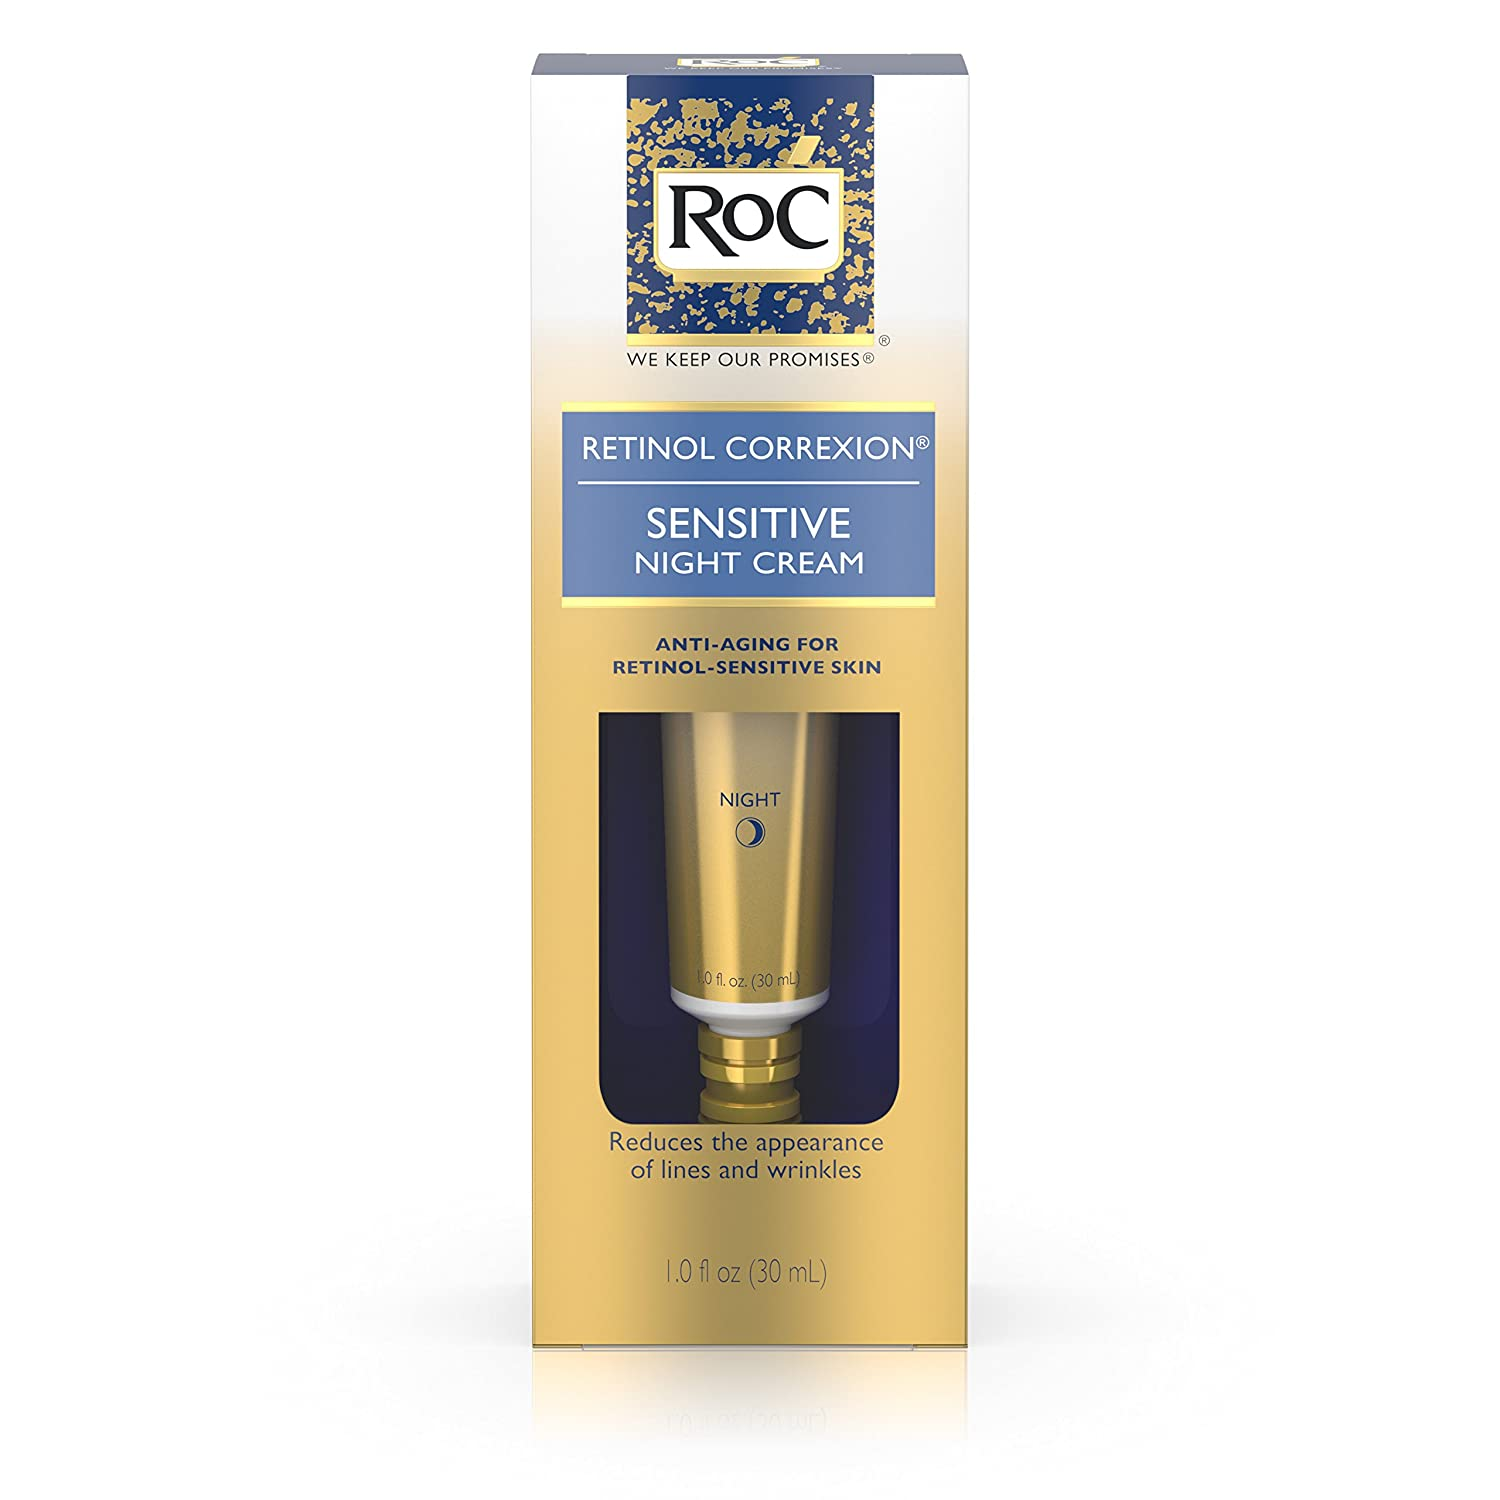 RoC Retinol Correxion Anti-Aging Sensitive Skin Wrinkle Night Cream, Made with Milder Strength Retinol and Hyaluronic Acid, 1 fl. oz 0381371089796 ROC762